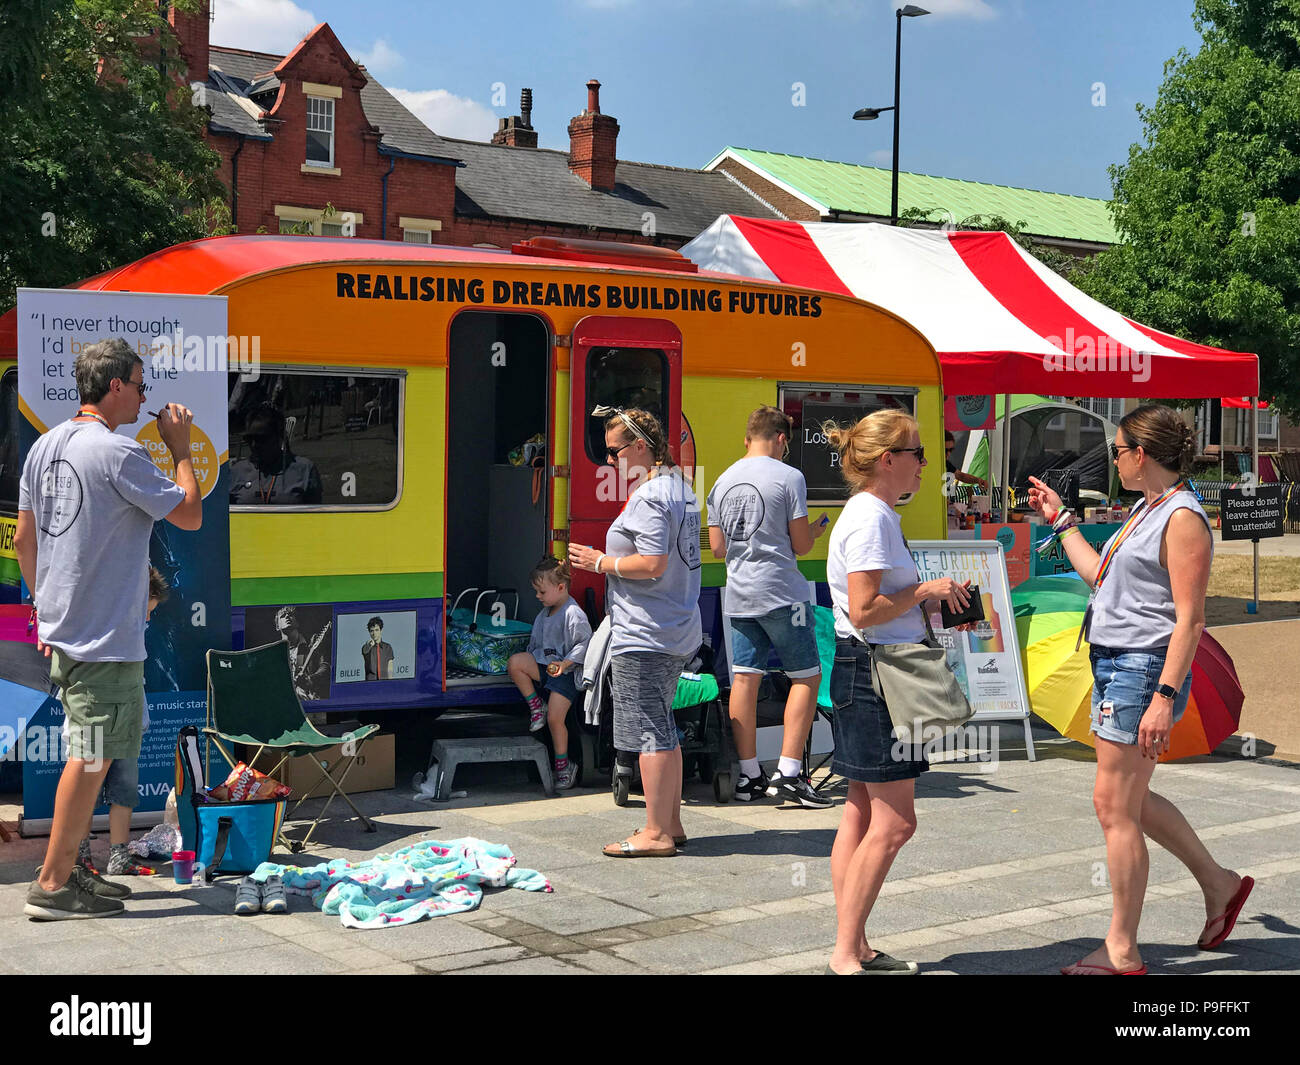 River Reeves Charity, Rivfest18, Palmyra Square, Warrington, Cheshire, North West England, UK - Stock Image